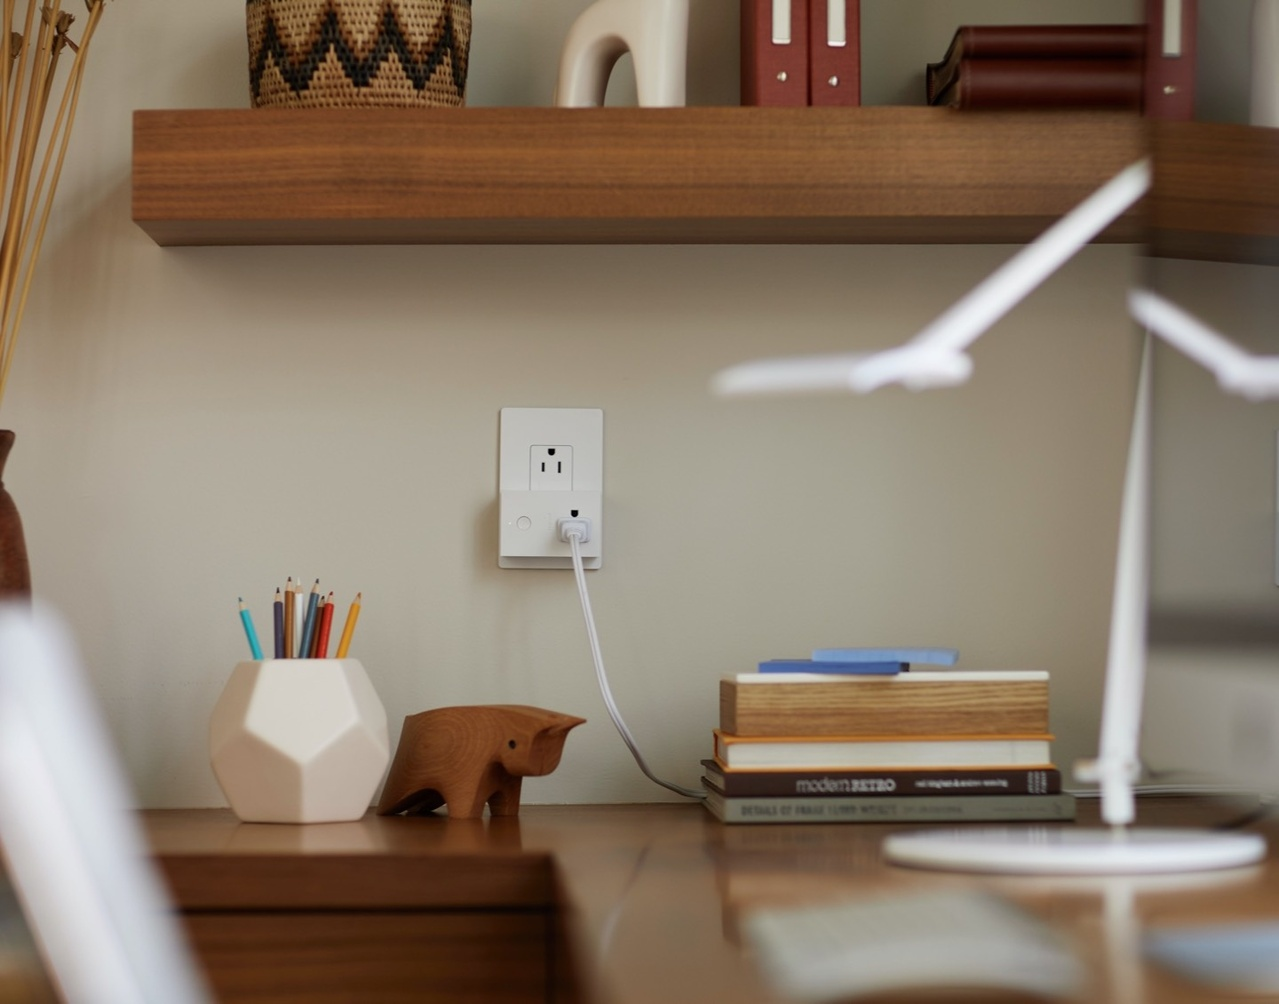 Image of desk with radiant outlet on wall